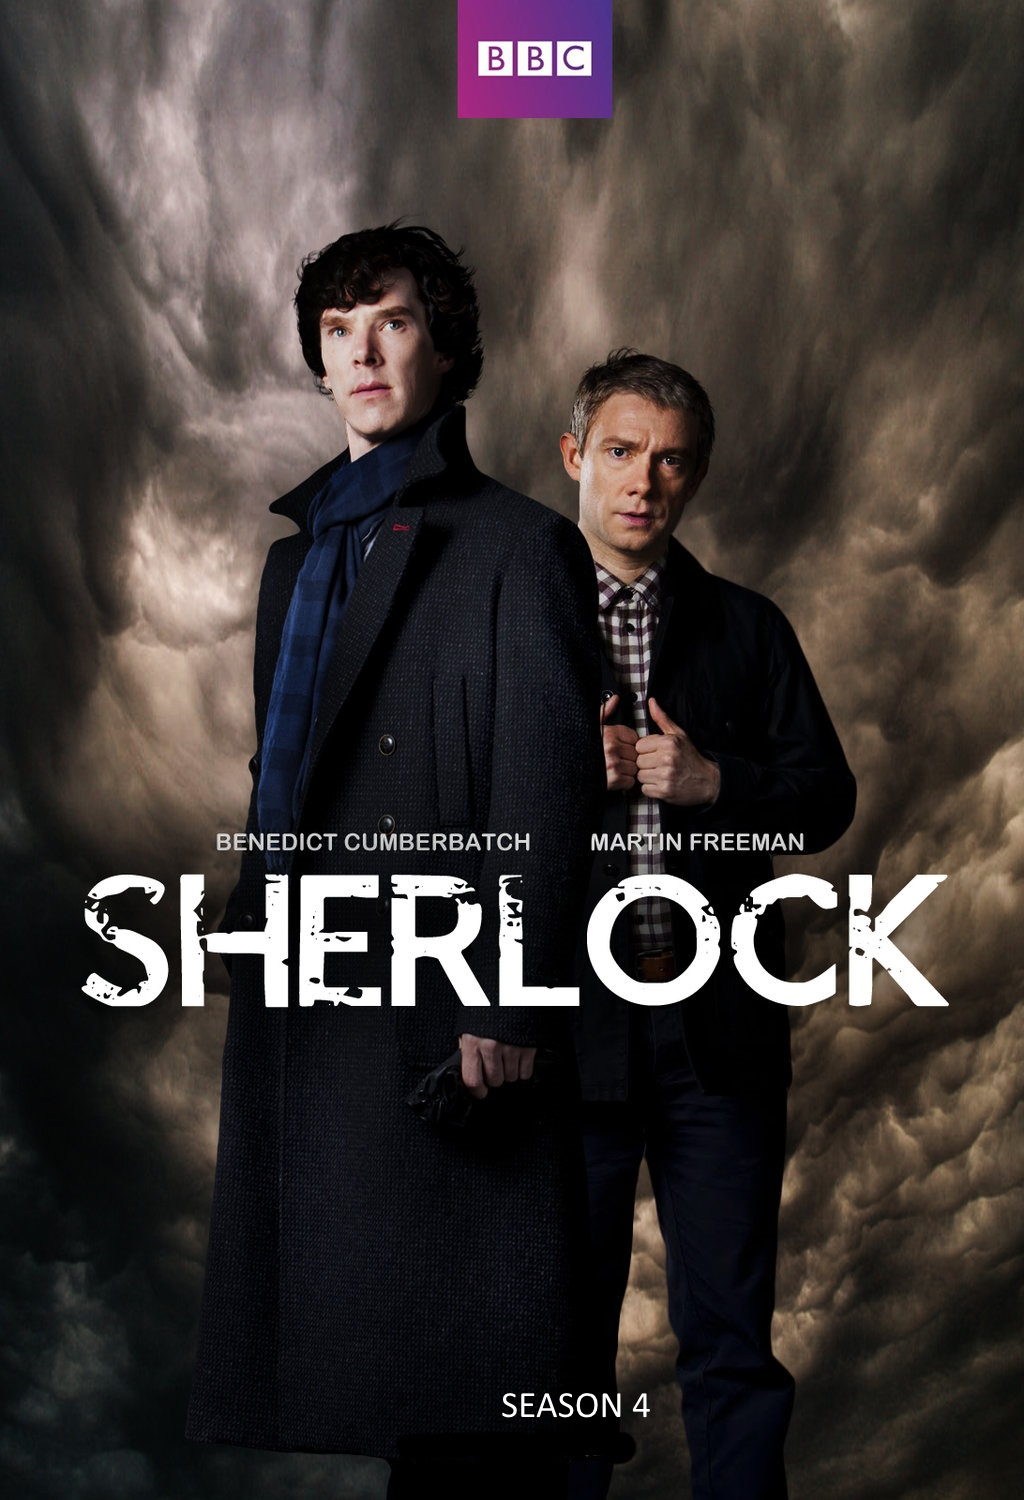 vod7_sherlock_tv_series_poster_season_3_by_marrakchi-d7c2urm.jpg